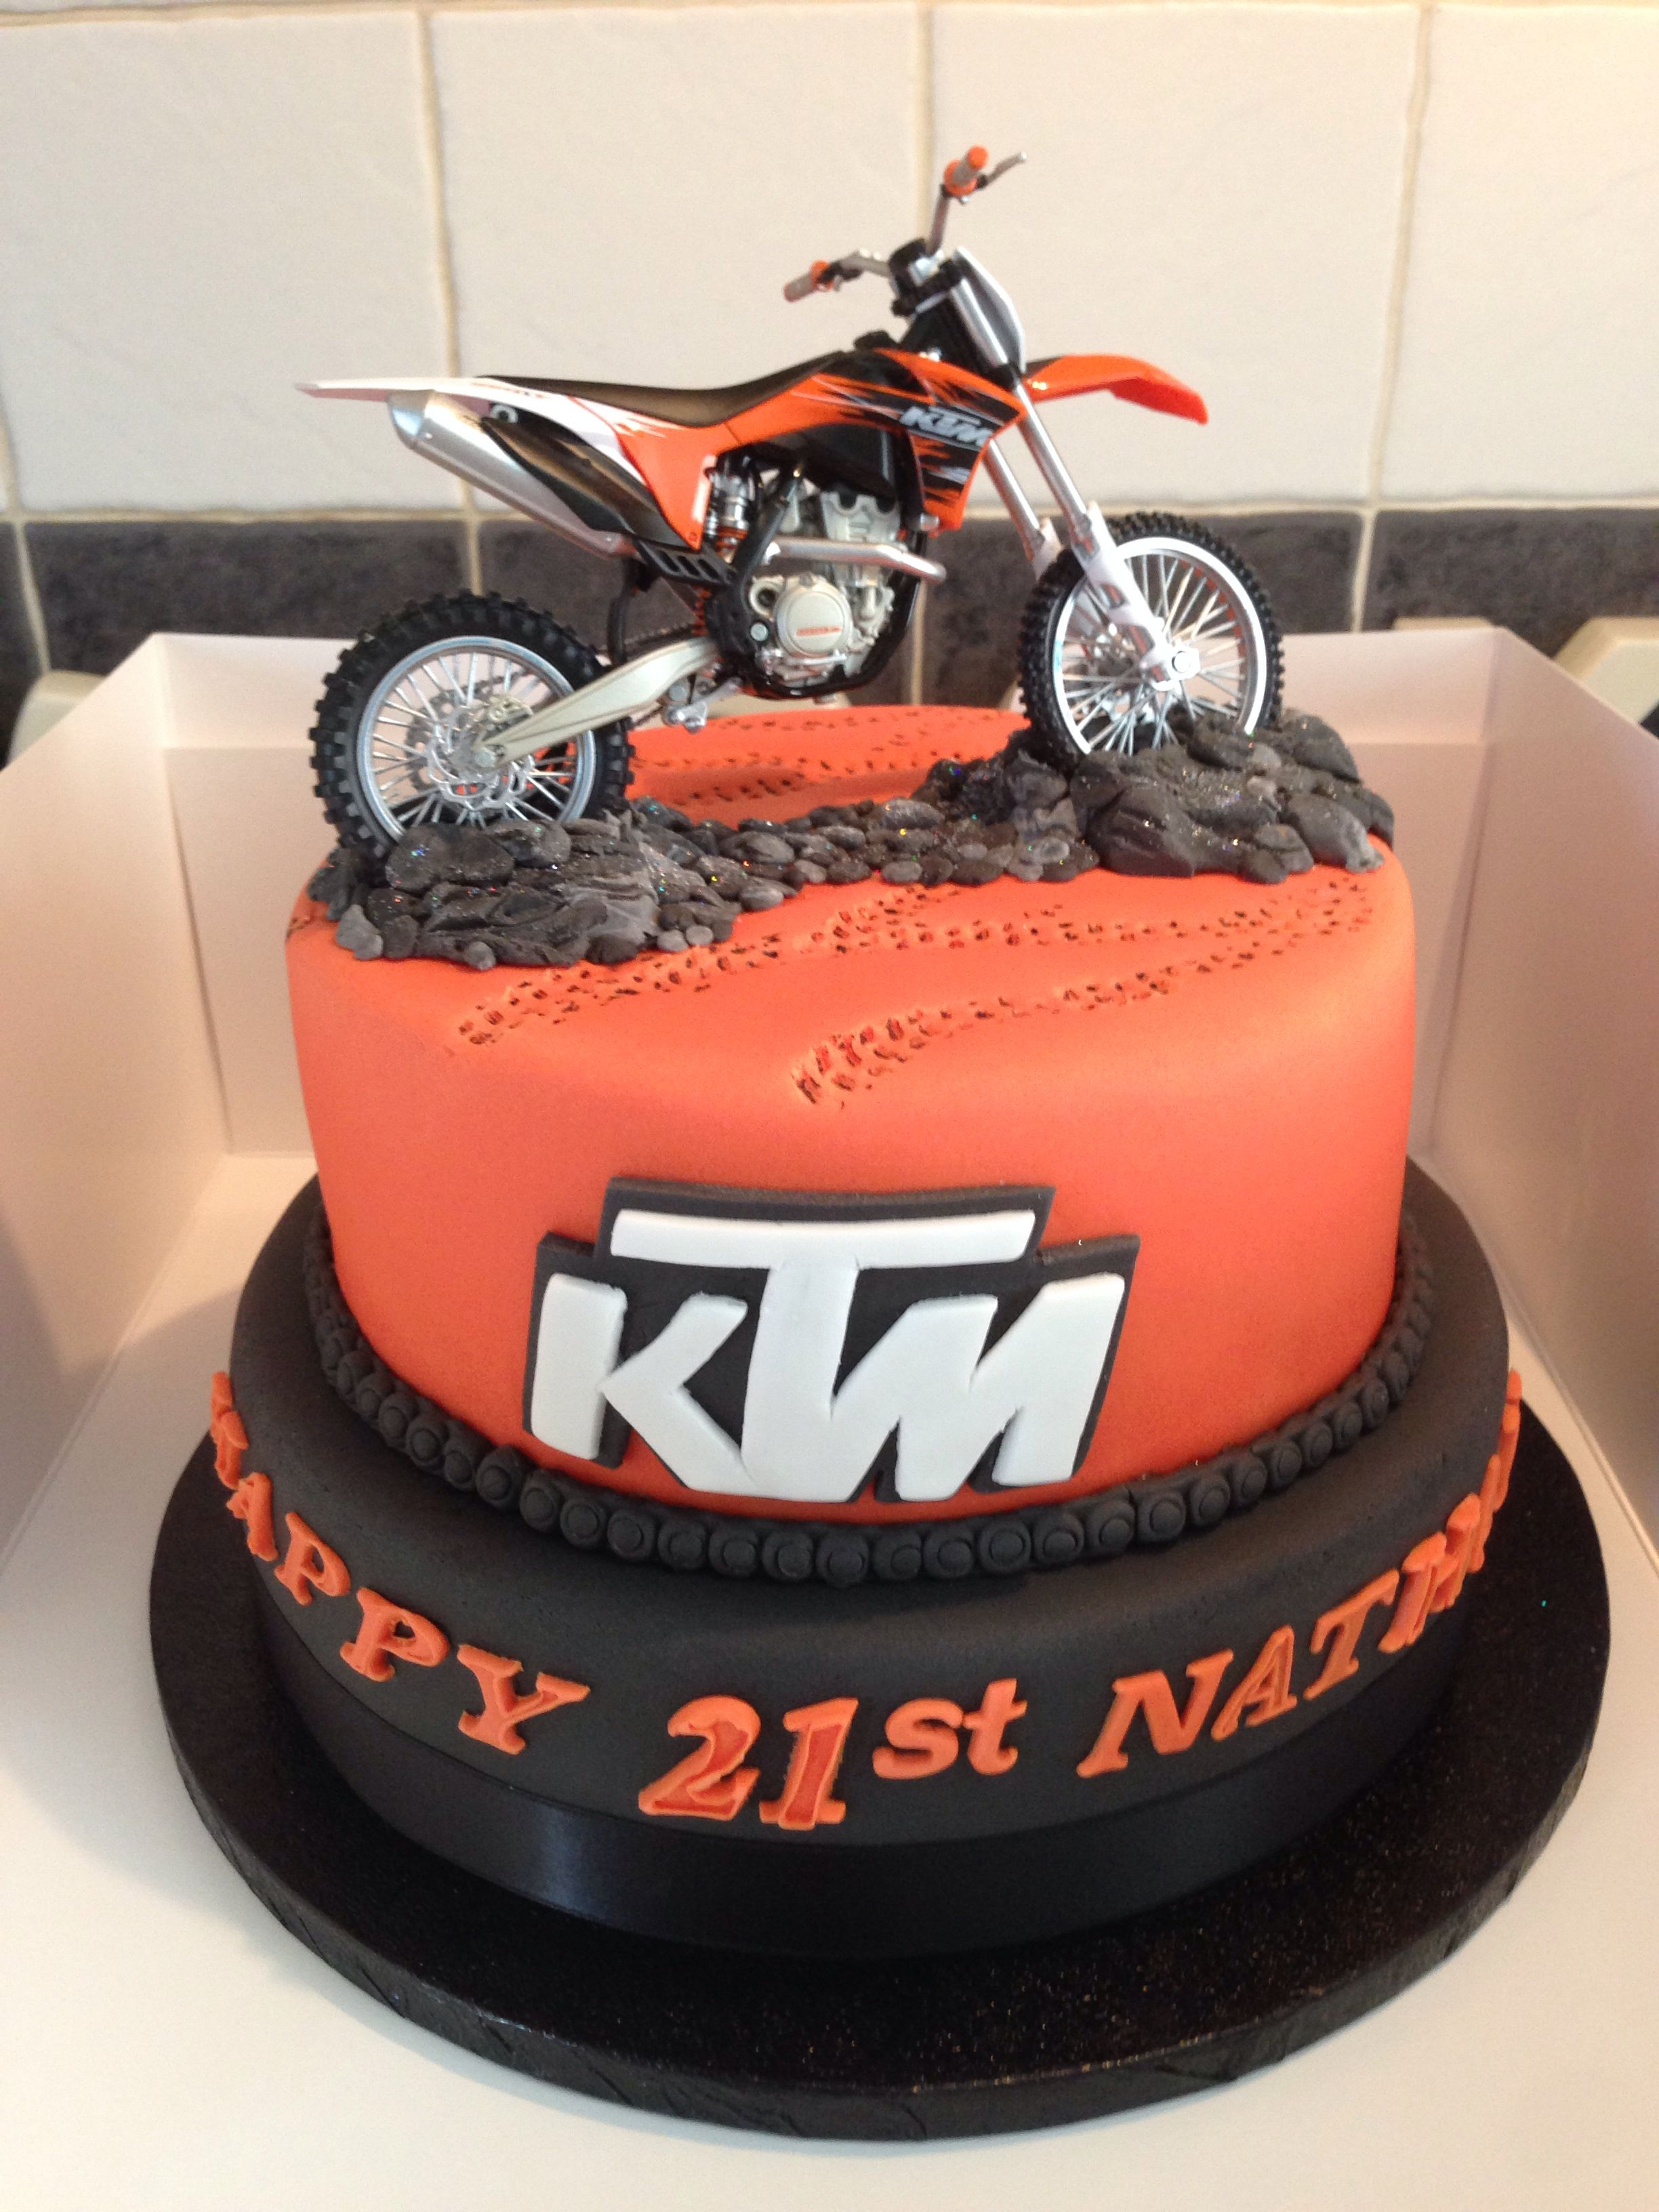 Really Awesome Birthday Cake With A Ktm Dirt Bike On It Dirt